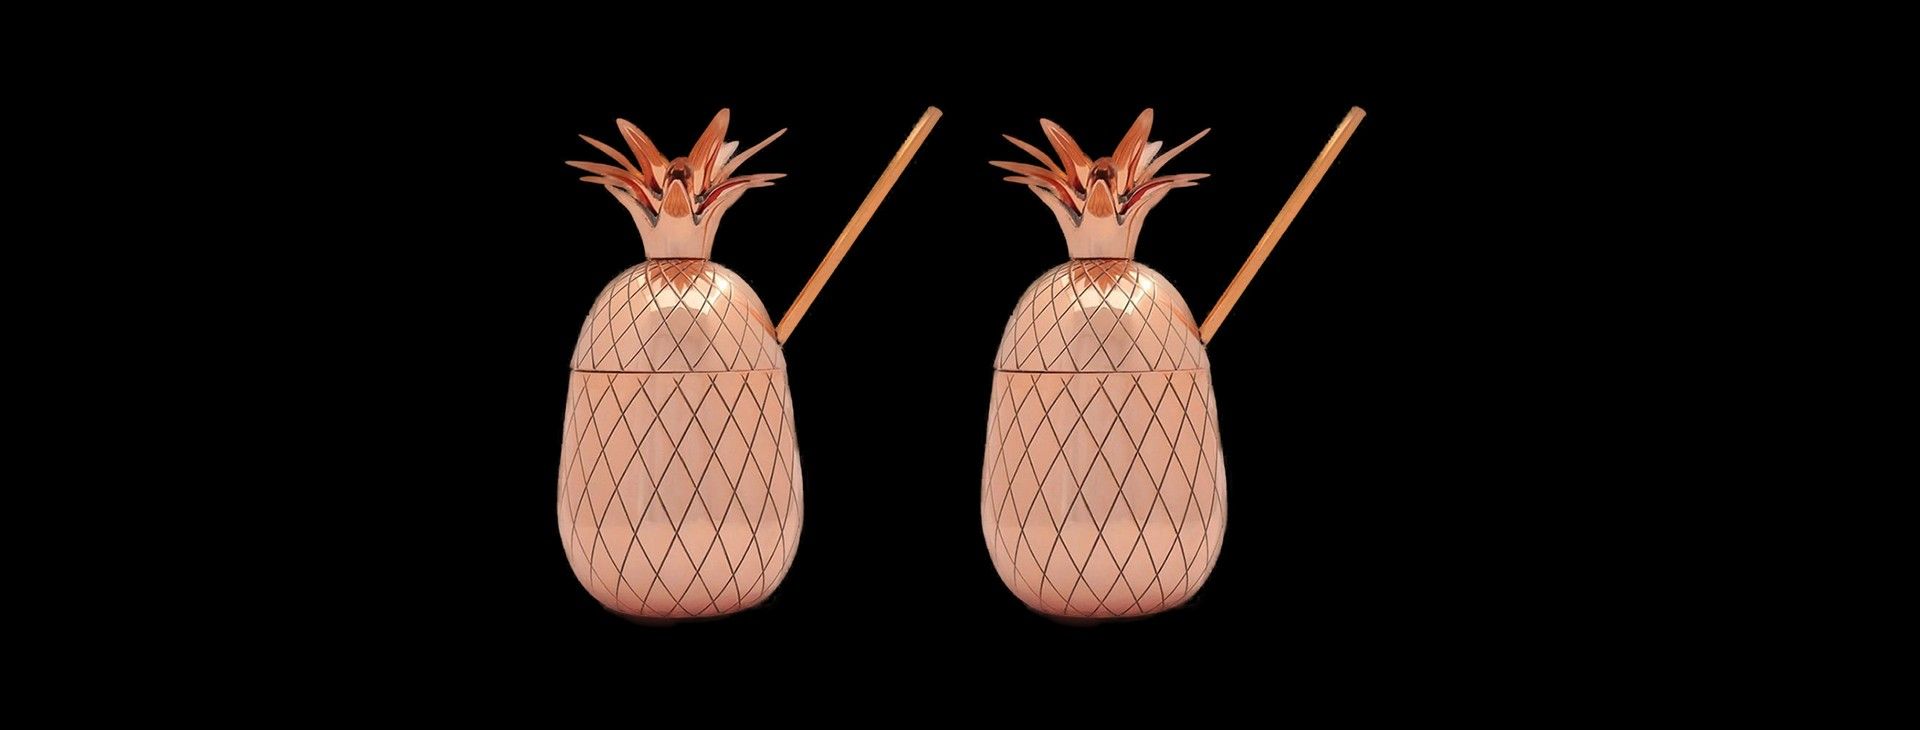 The Pineapple Co. by W&P Design Large Pineapple Tumbler Set